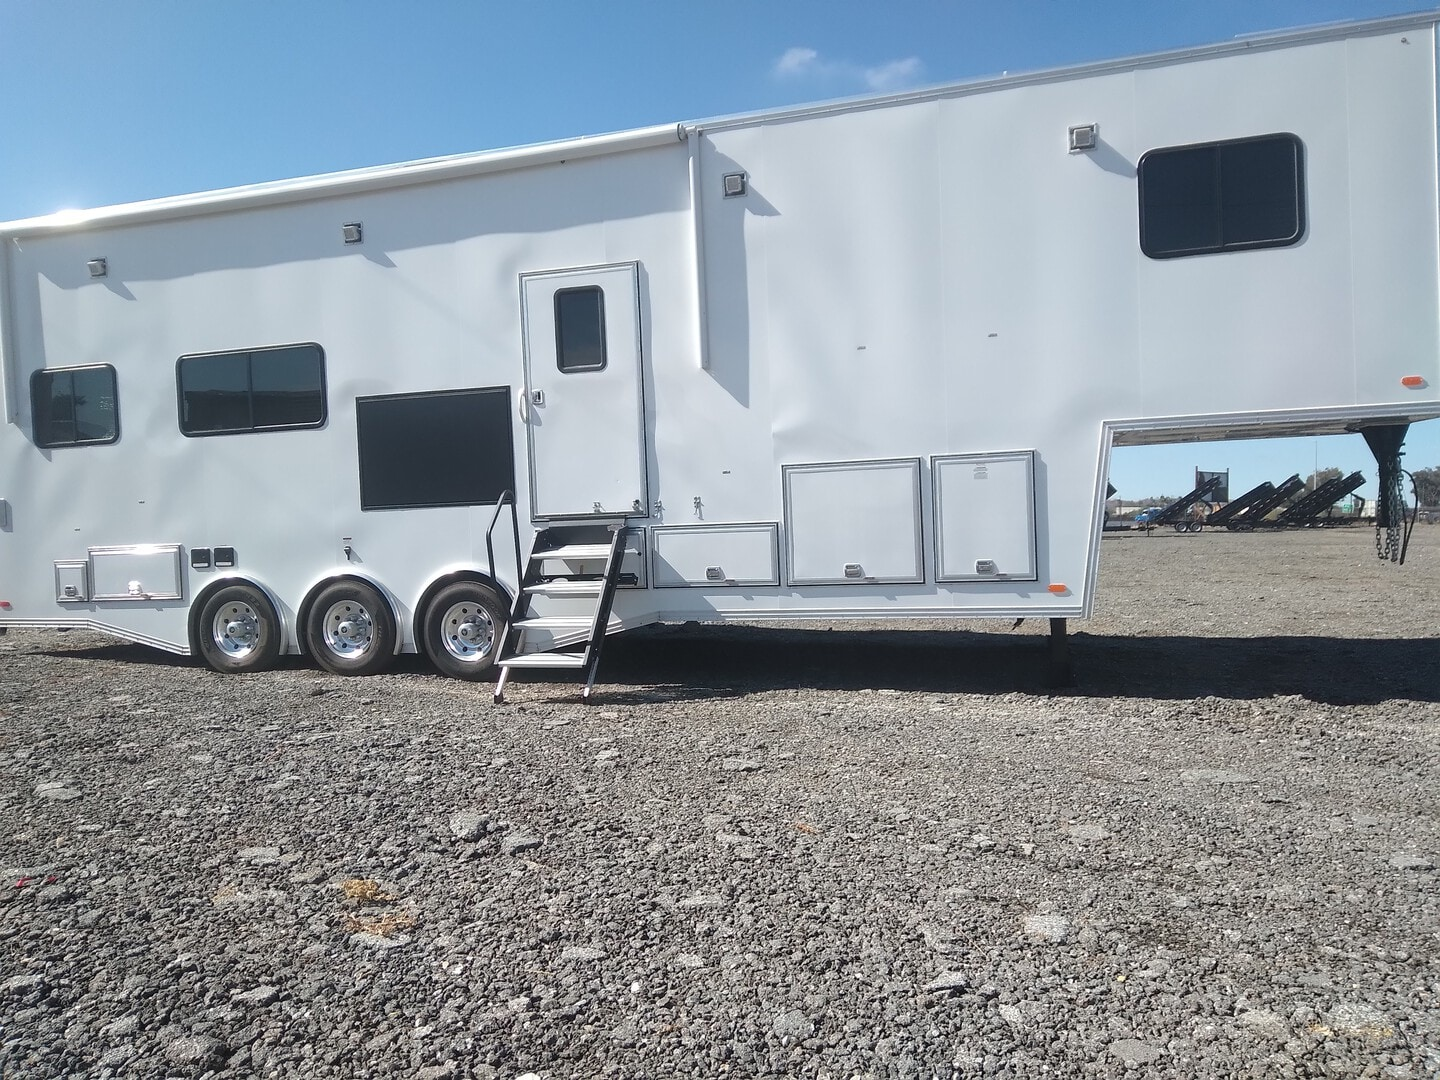 Used, 2020, Carson Trailer, RC383, Fifth Wheels